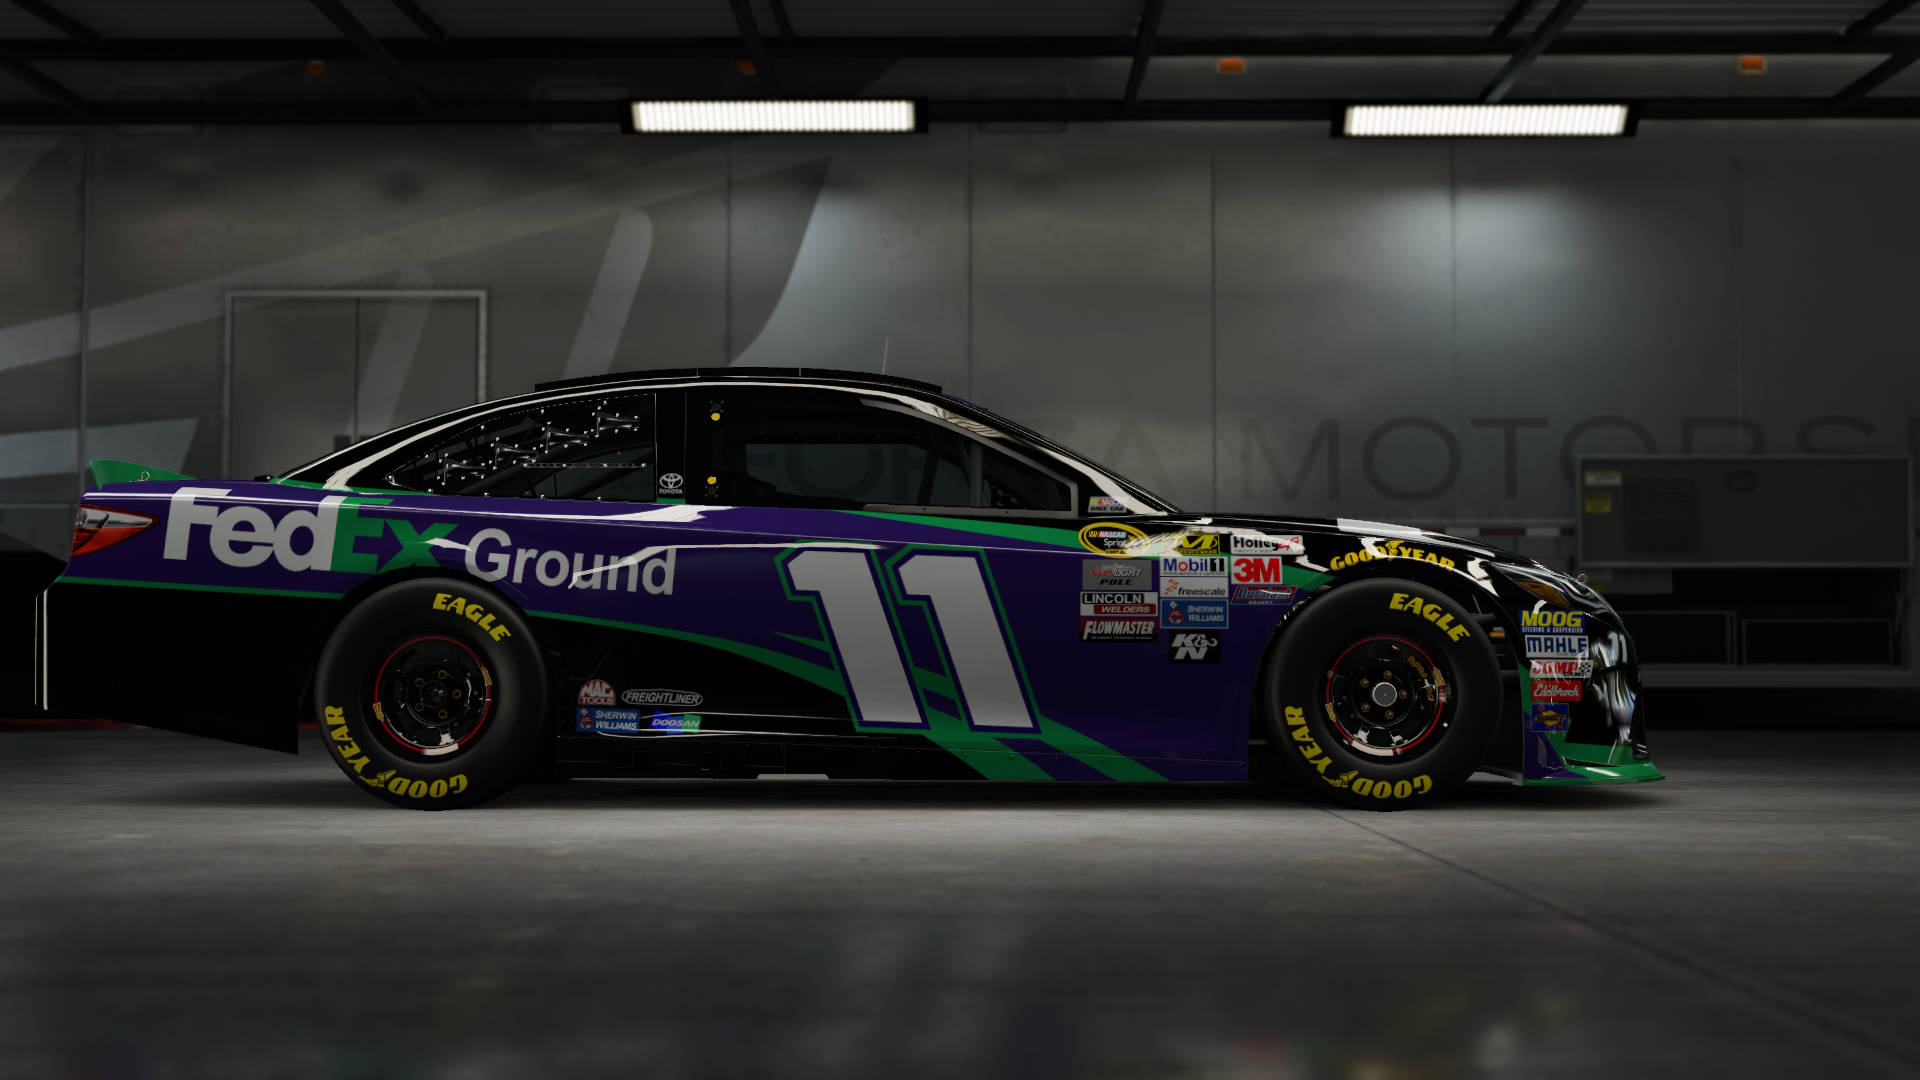 On the #11 Joe Gibbs Racing FedEx Express Camry, Made by SweedishThunder